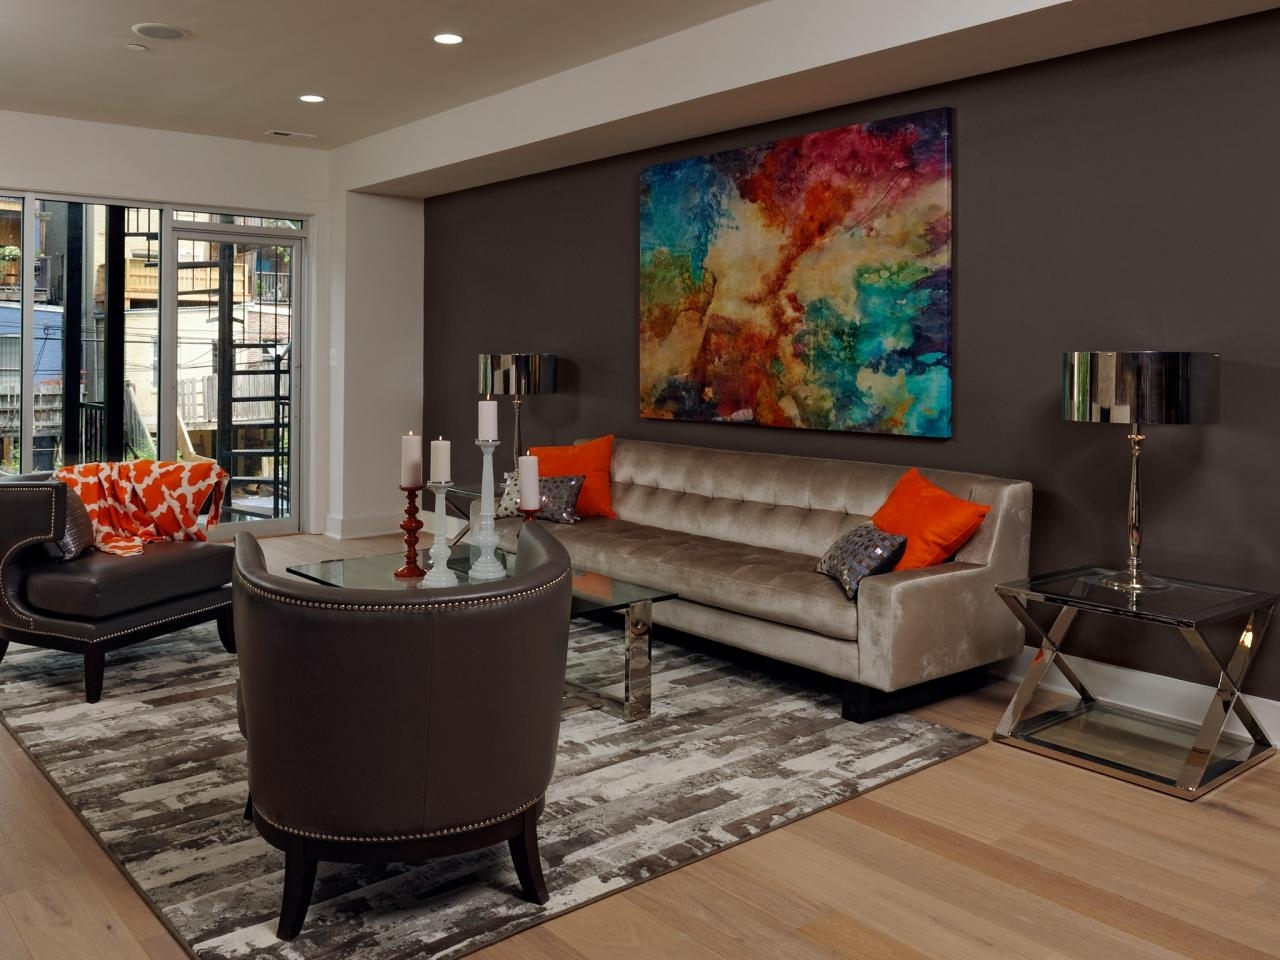 Brown Wall Accents In 2018 Decoration. Paint And Accent Wall Ideas To Transform Your Room (Gallery 1 of 15)